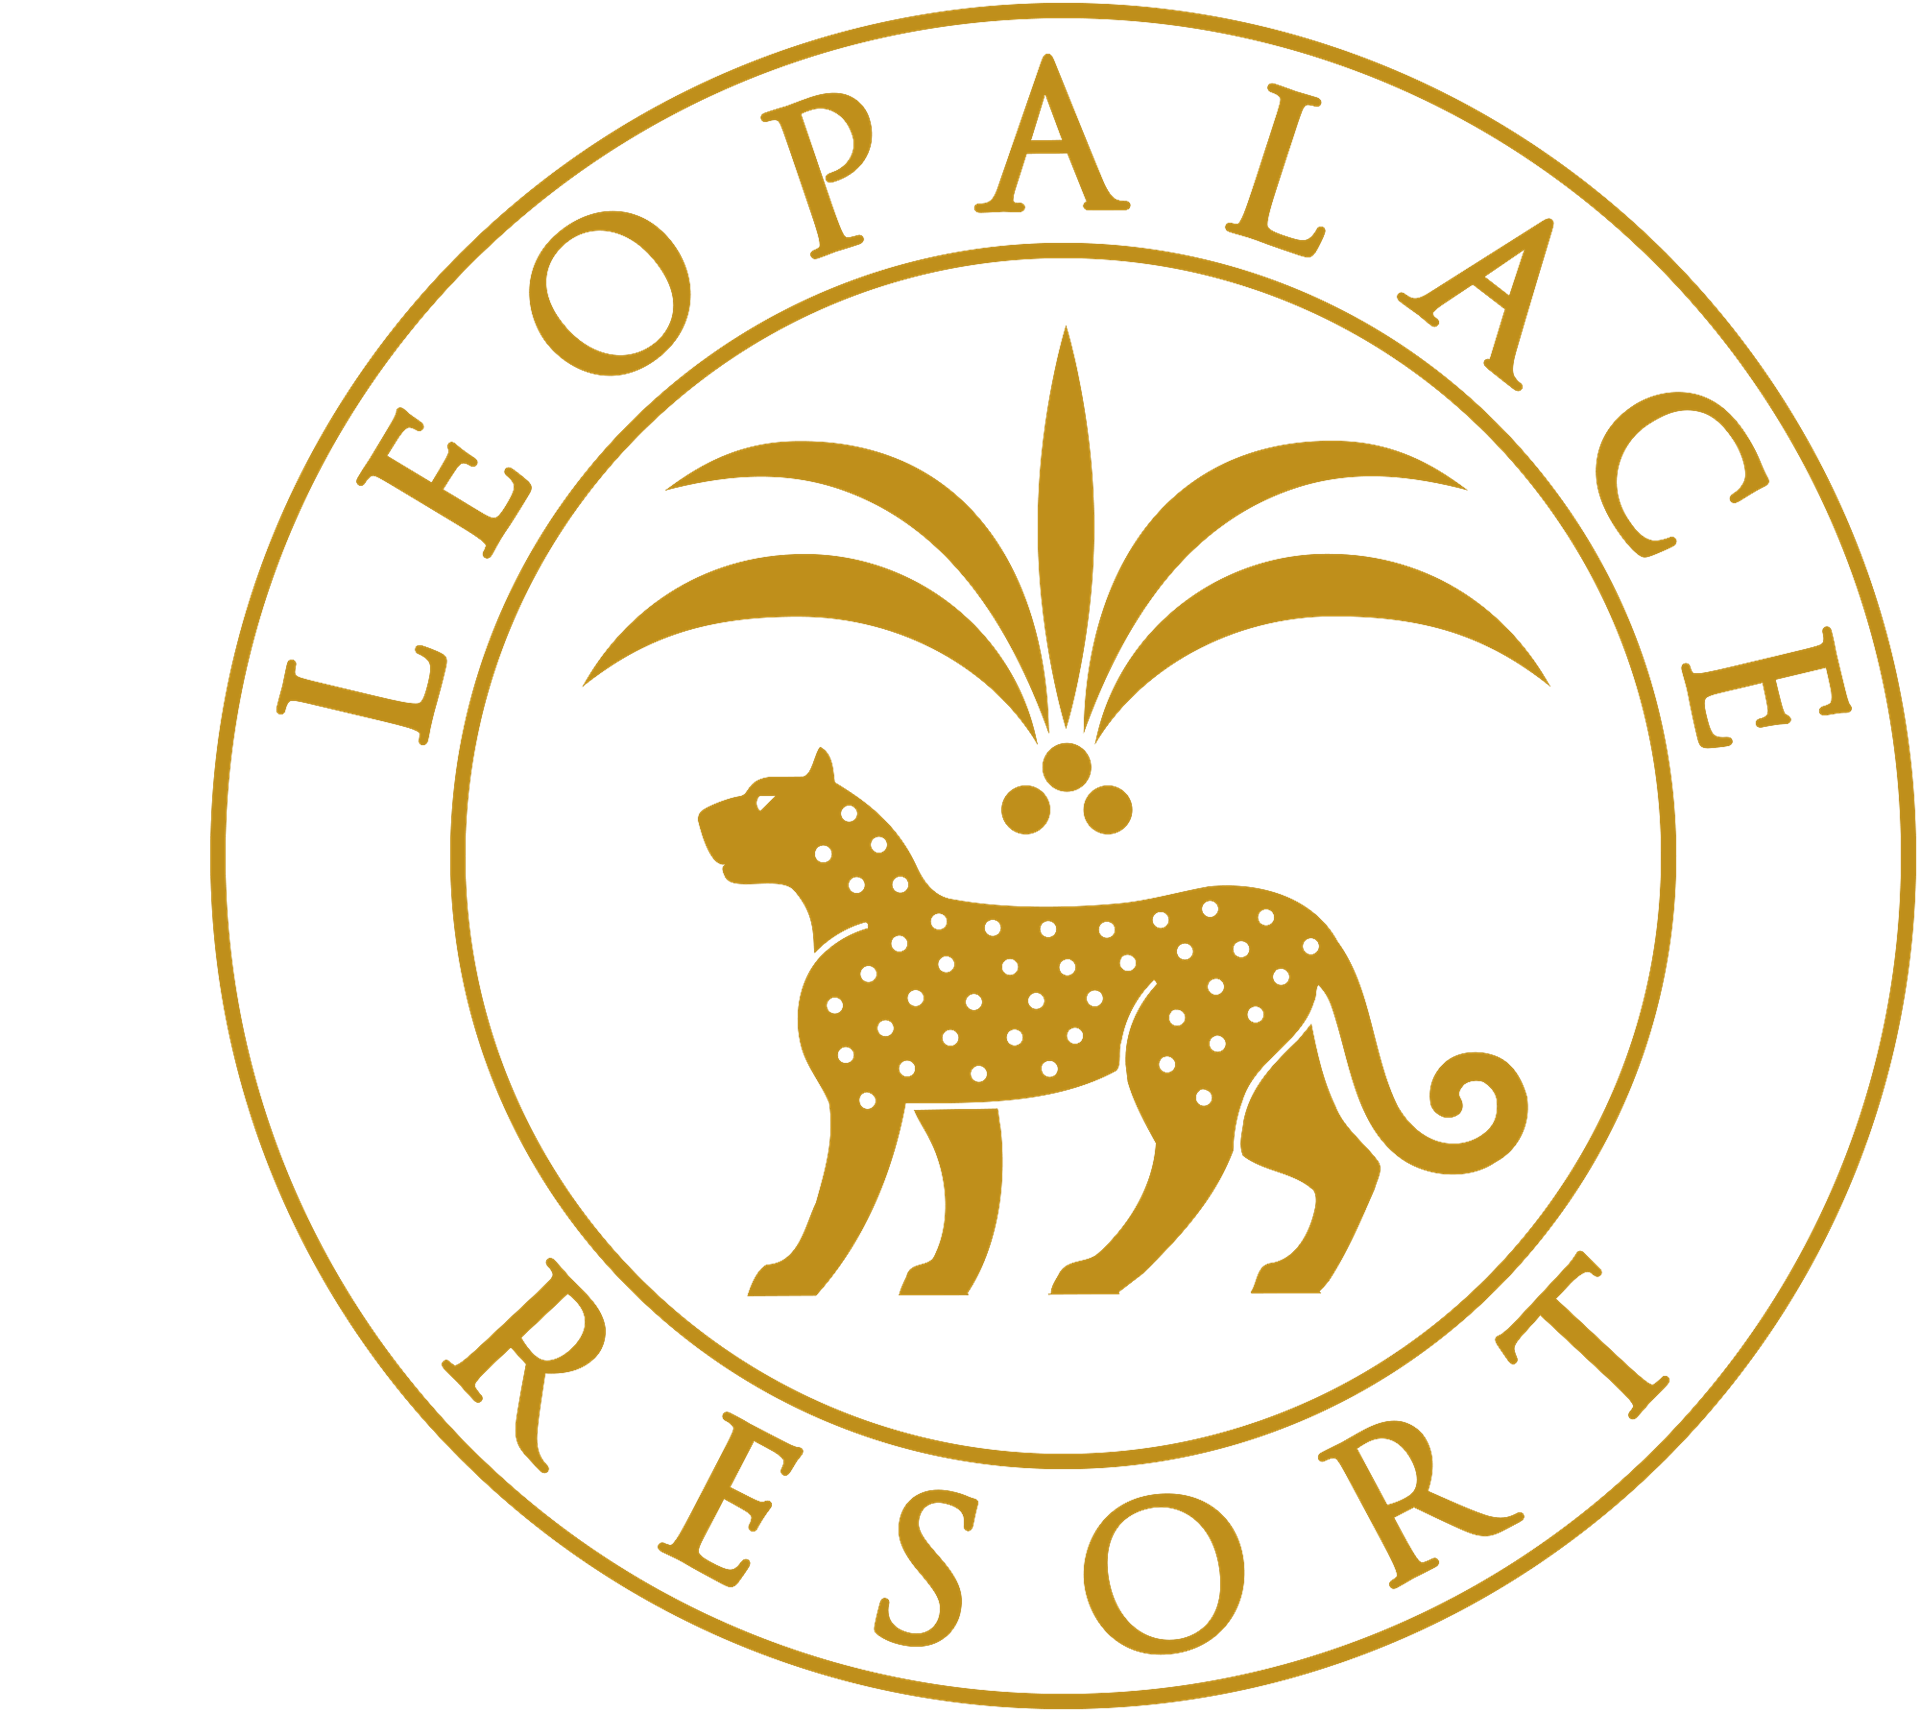 LeoPalace Resort Guam